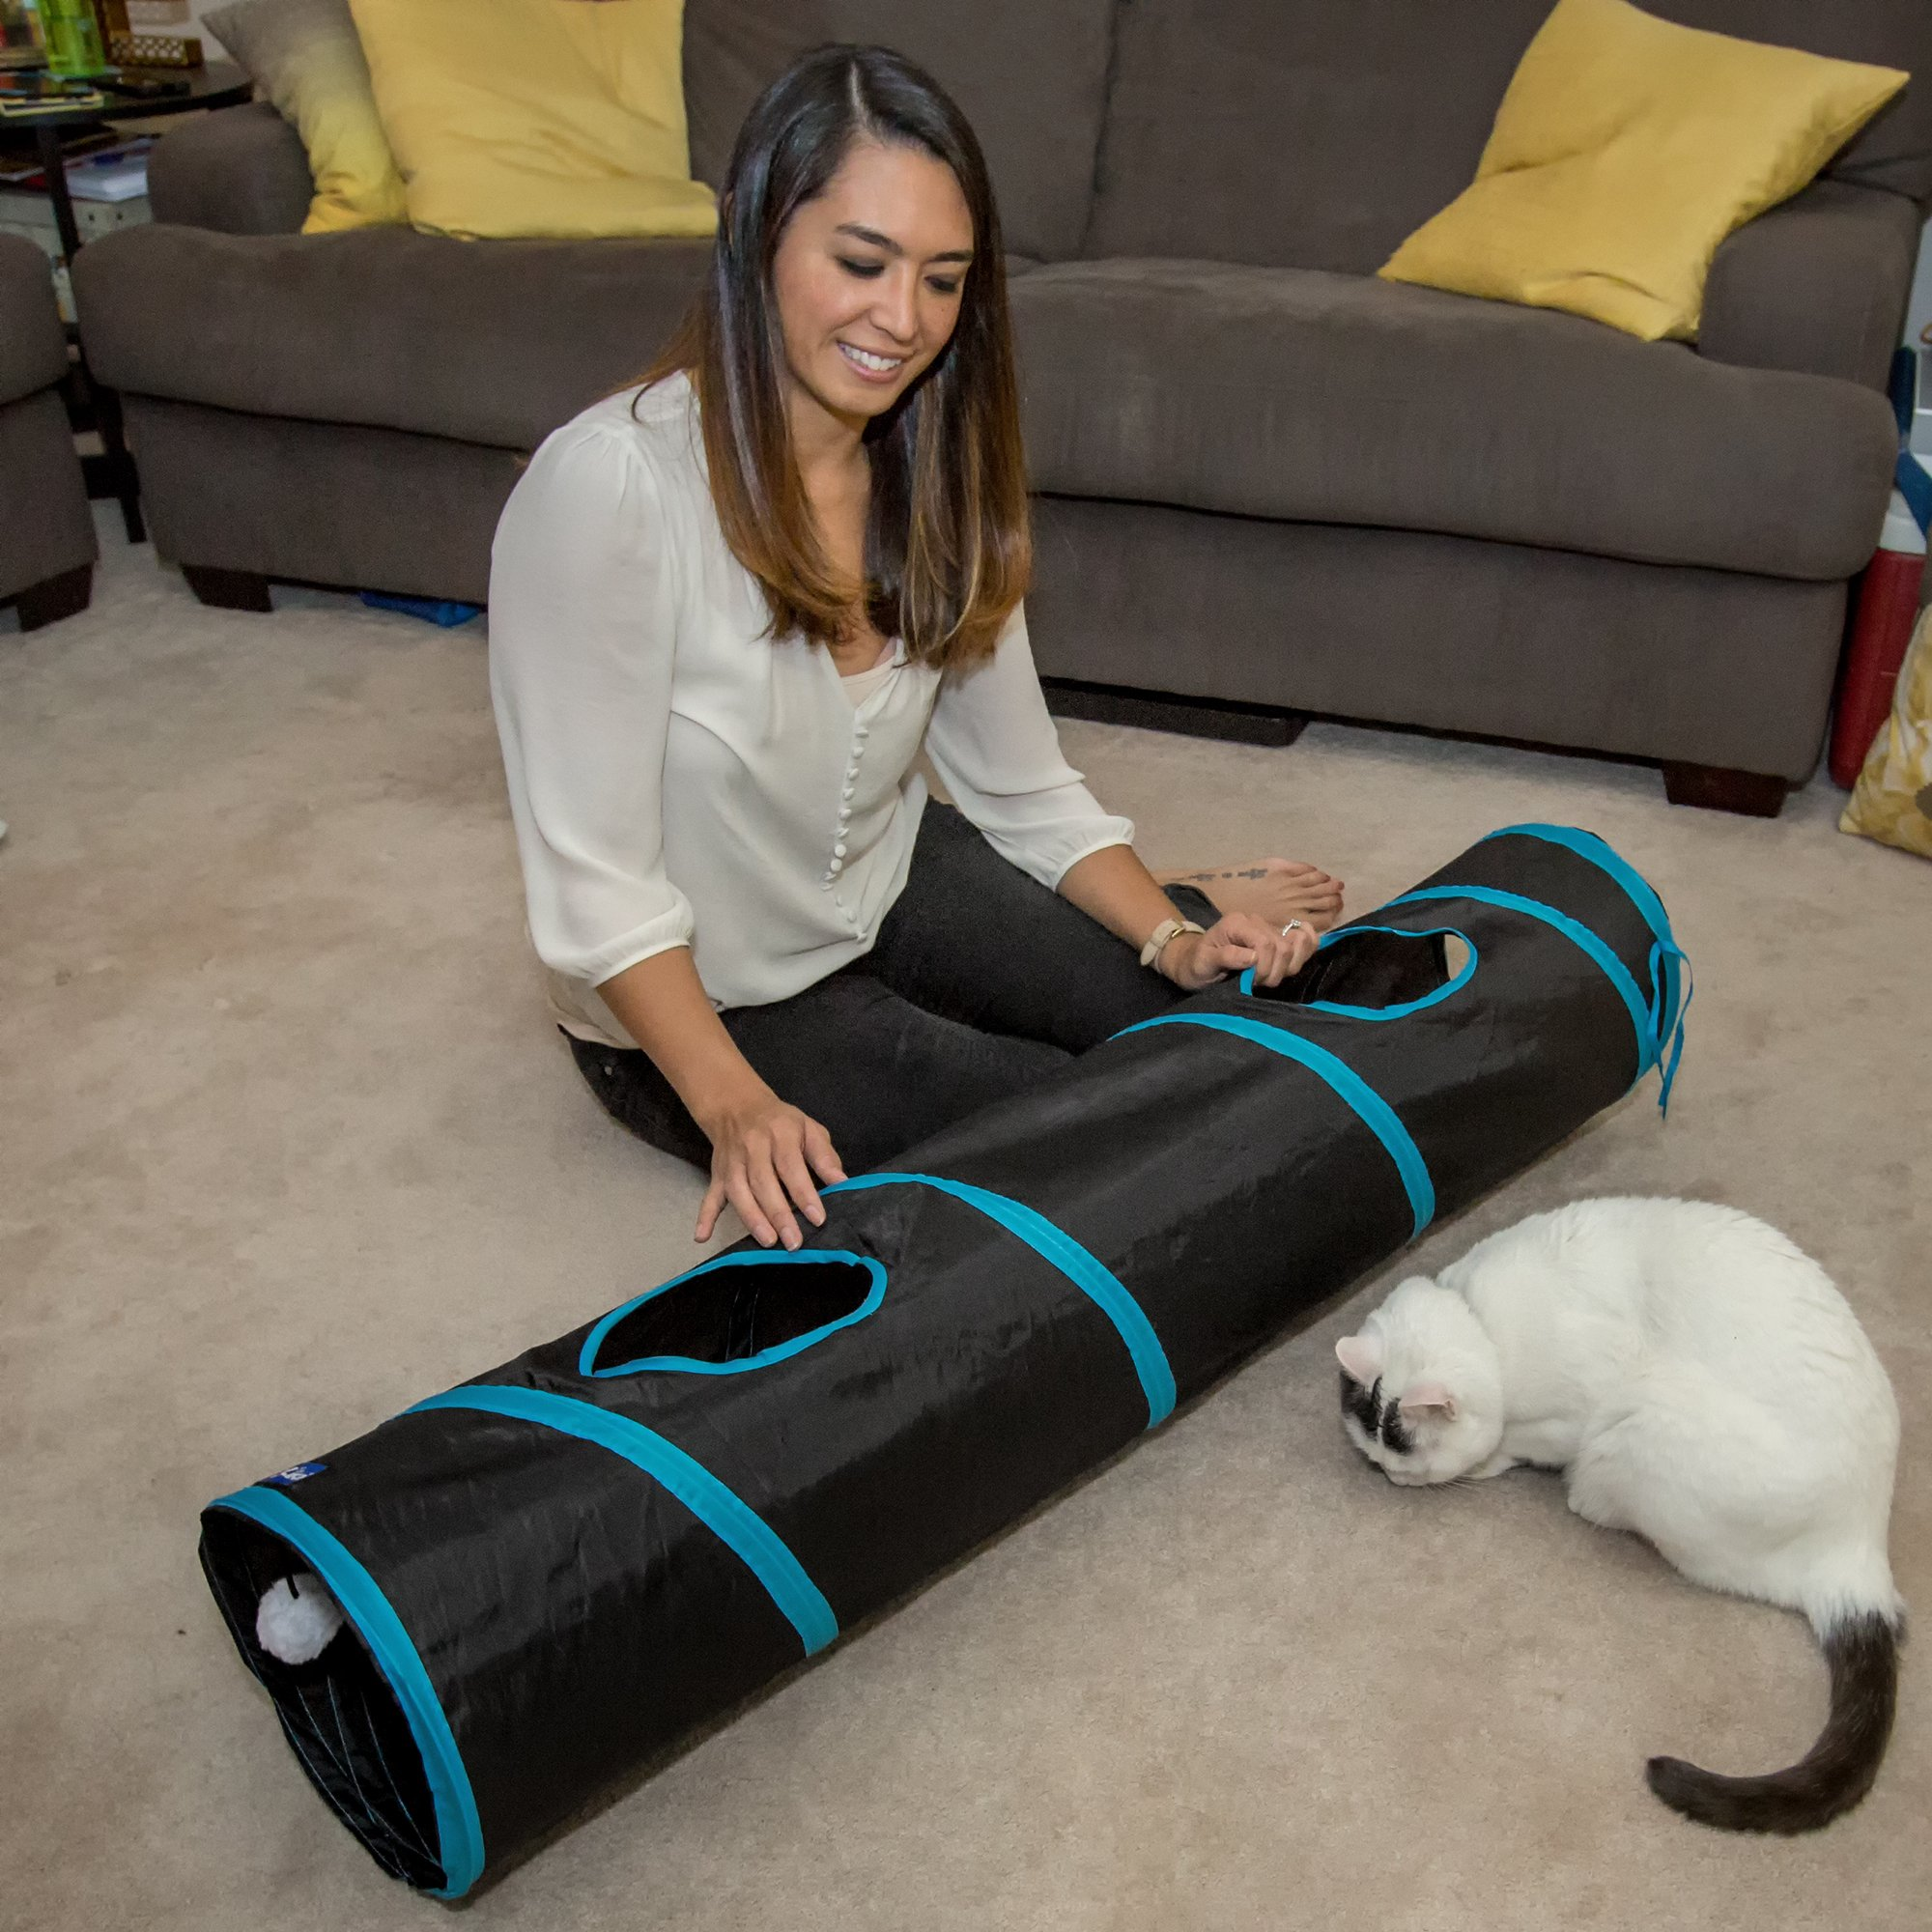 PetLike Deluxe Collapsible Cat Tunnel Toy By Pet Tube For Kittens, Puppies, Rabbits And Other Small-Sized Pets Fun And Durable Hideaway For Entertainment, Training, Exercise And Running by PetLike (Image #8)